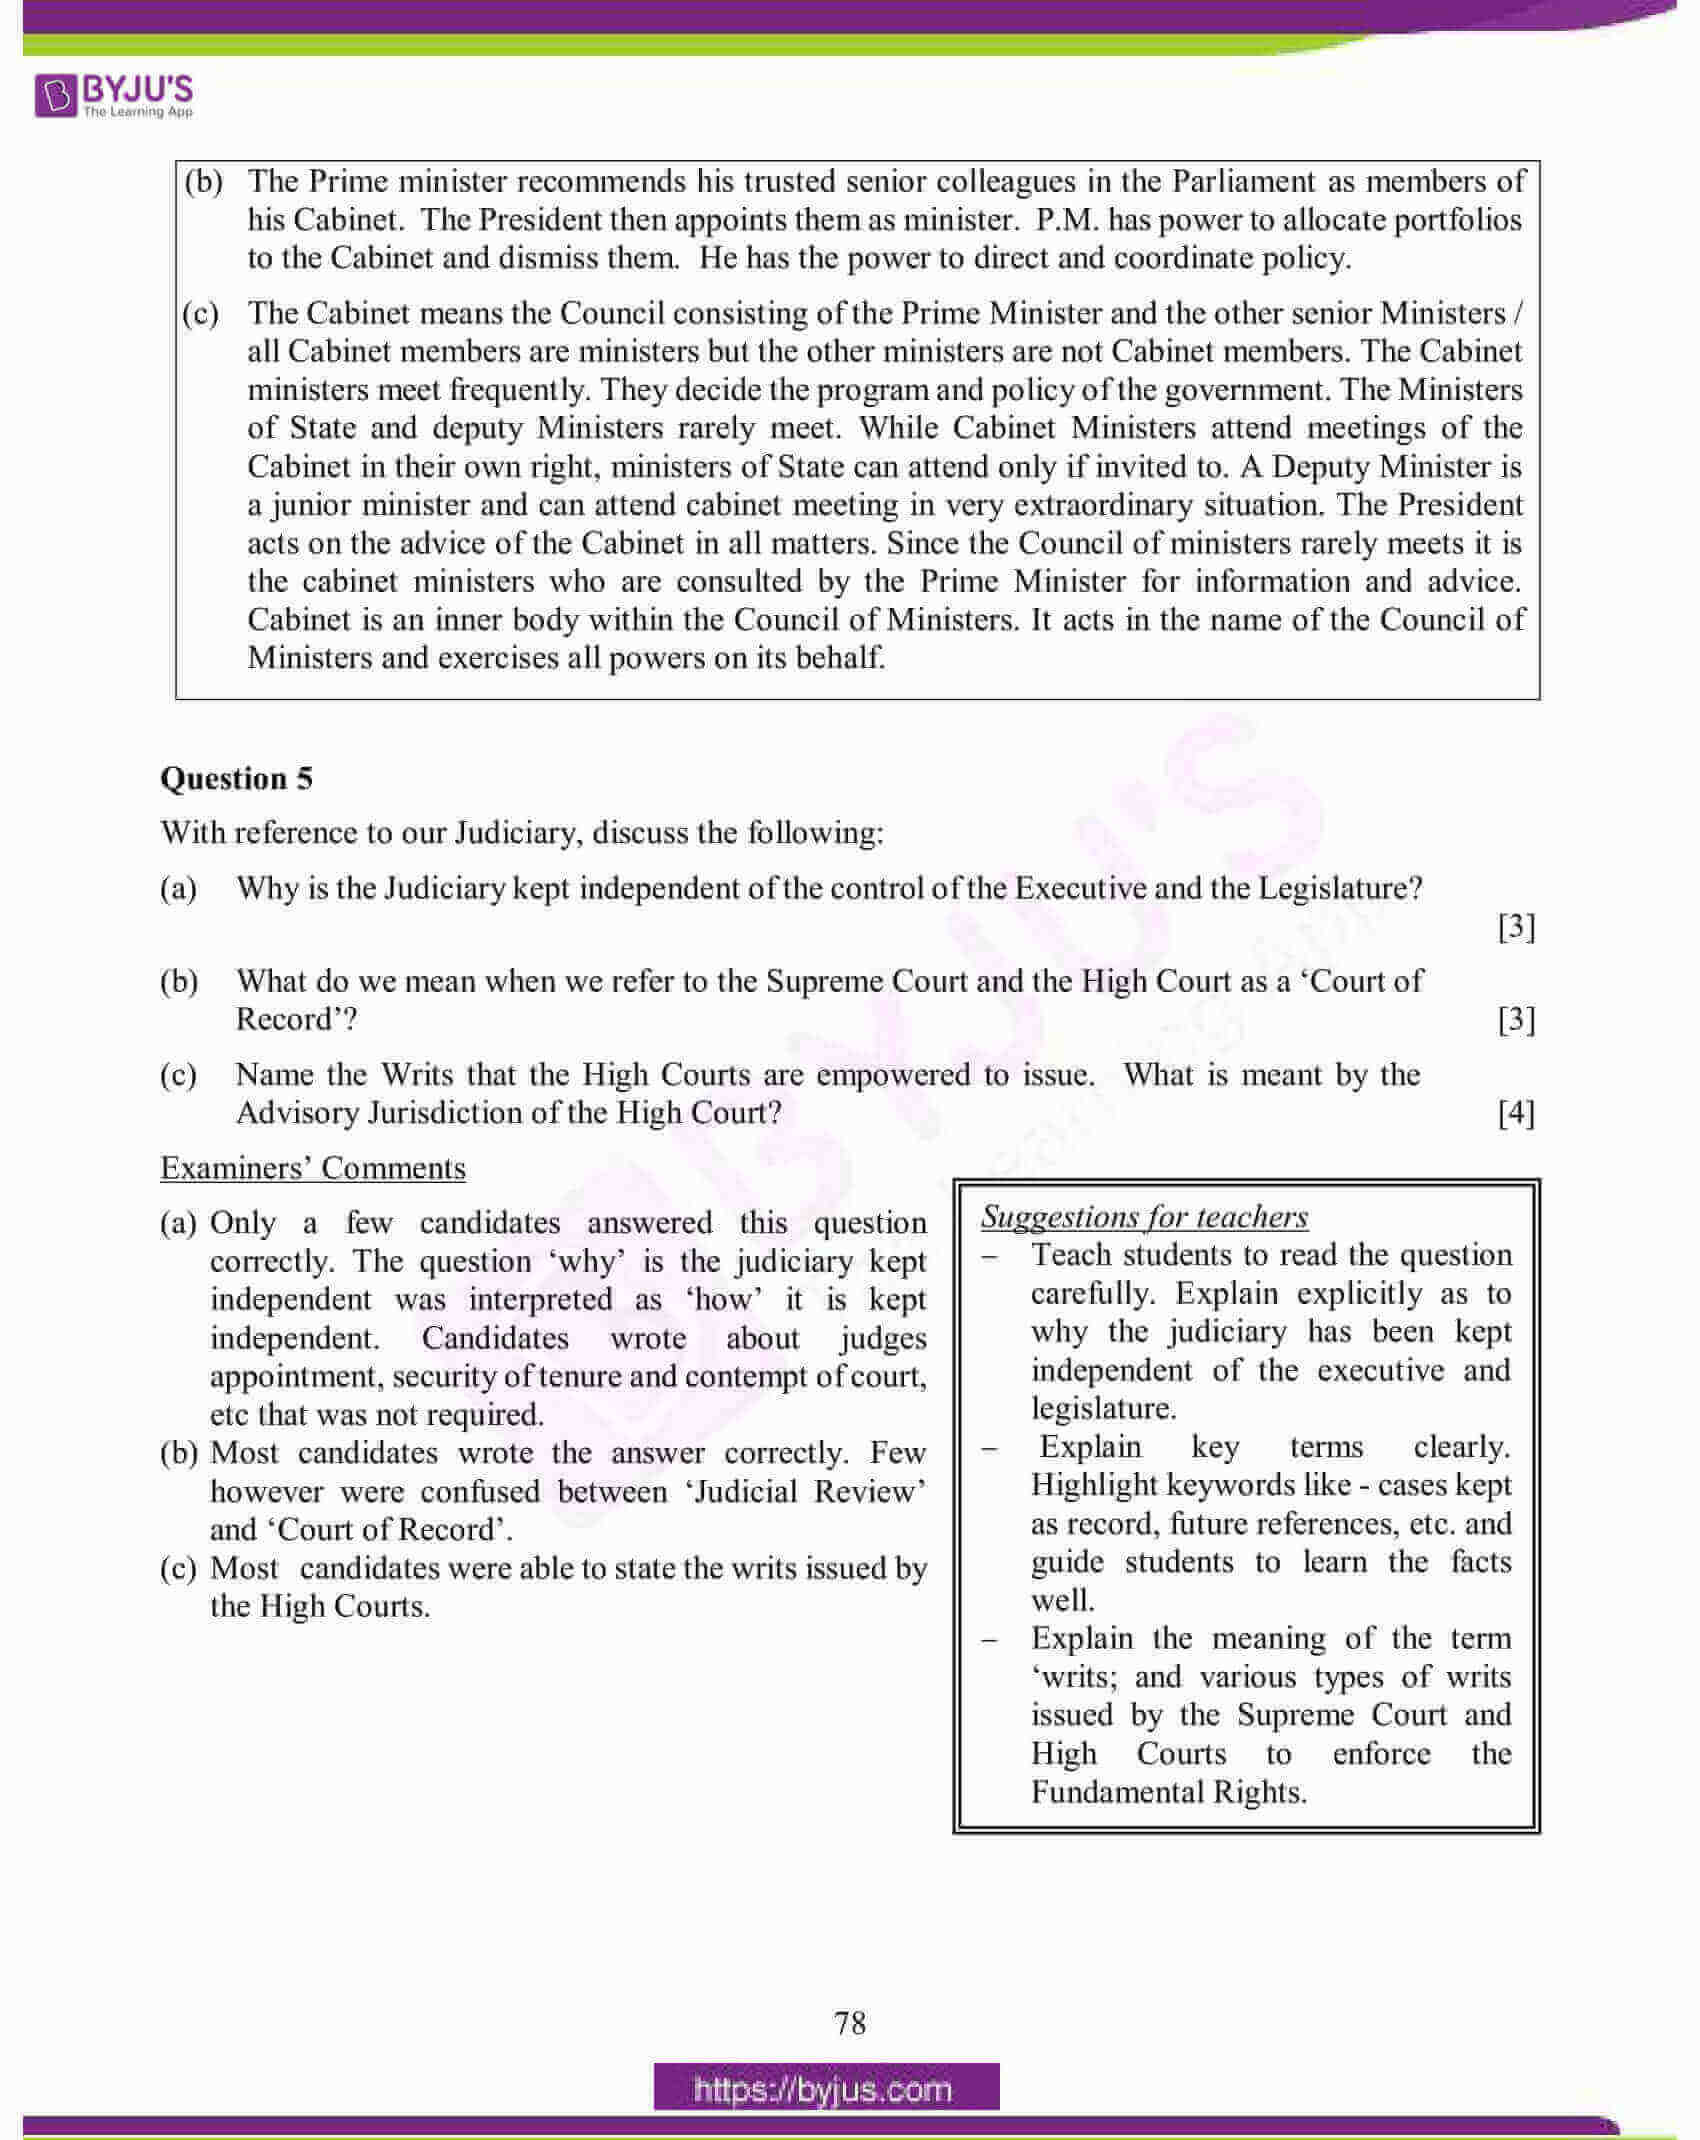 icse class 10 his and civics question paper solution 2015 08